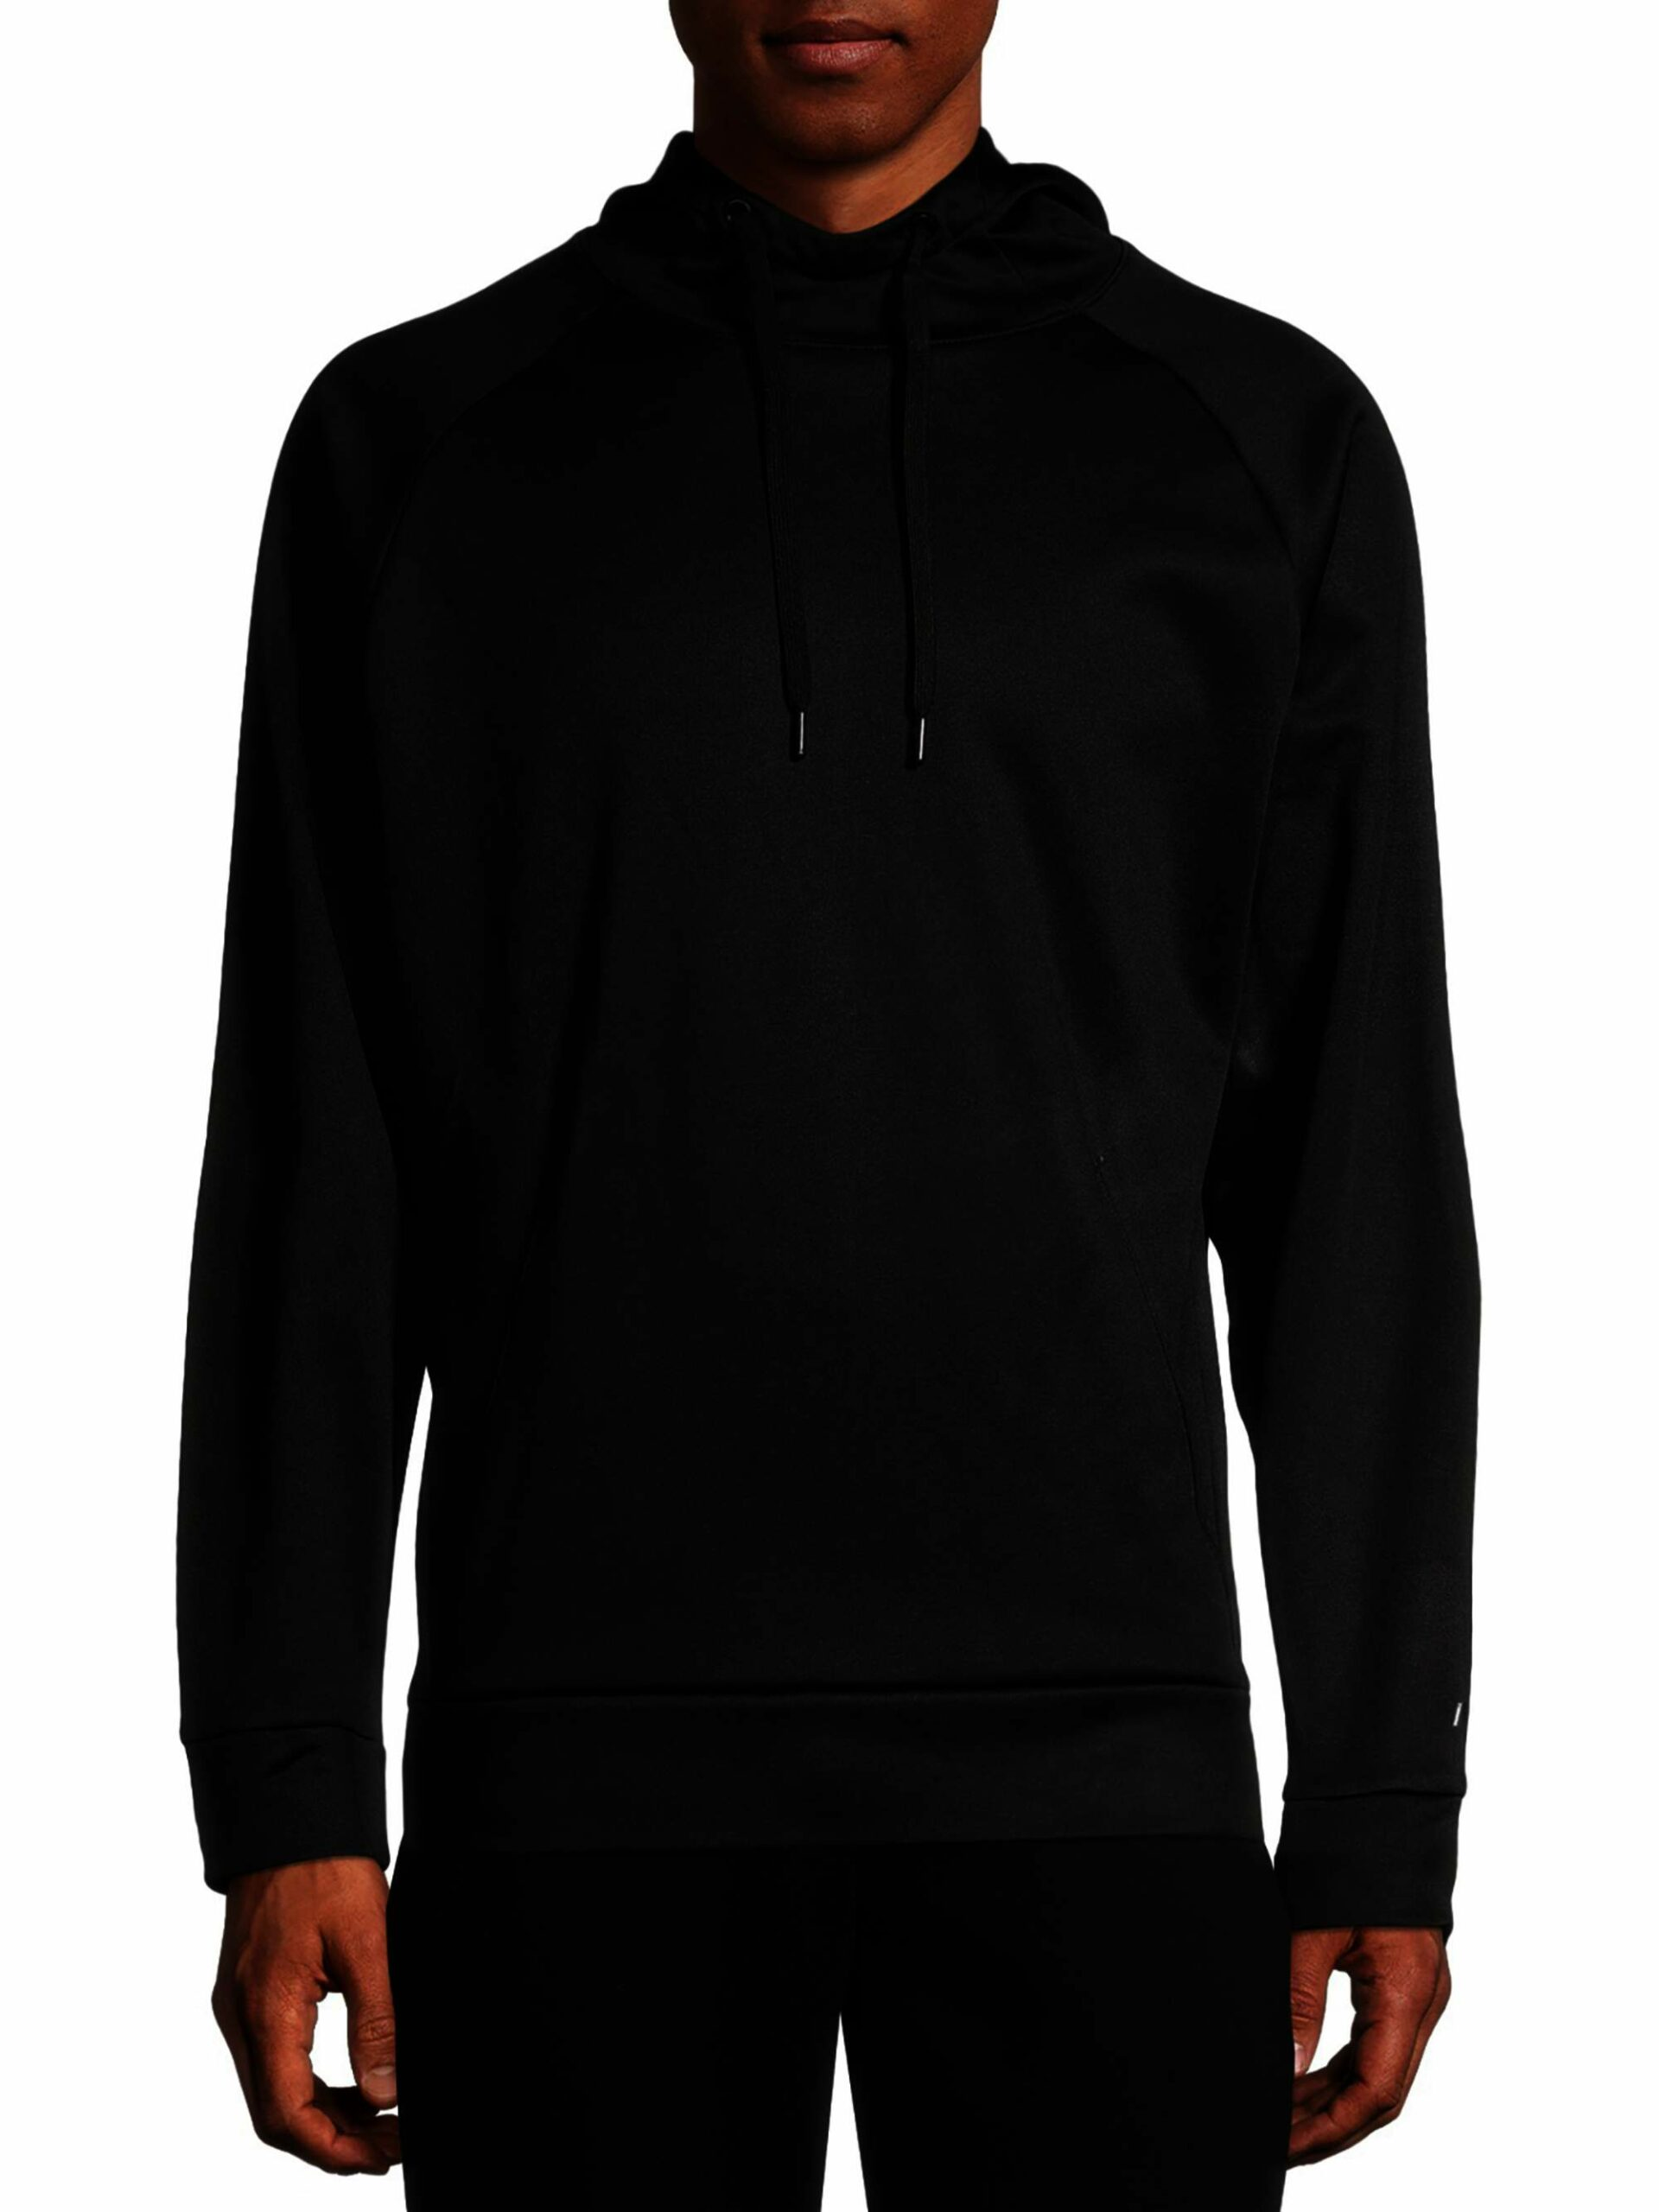 Russell Men's Active Tech Fleece Pullover Hoodie Black Size (M 38-40)